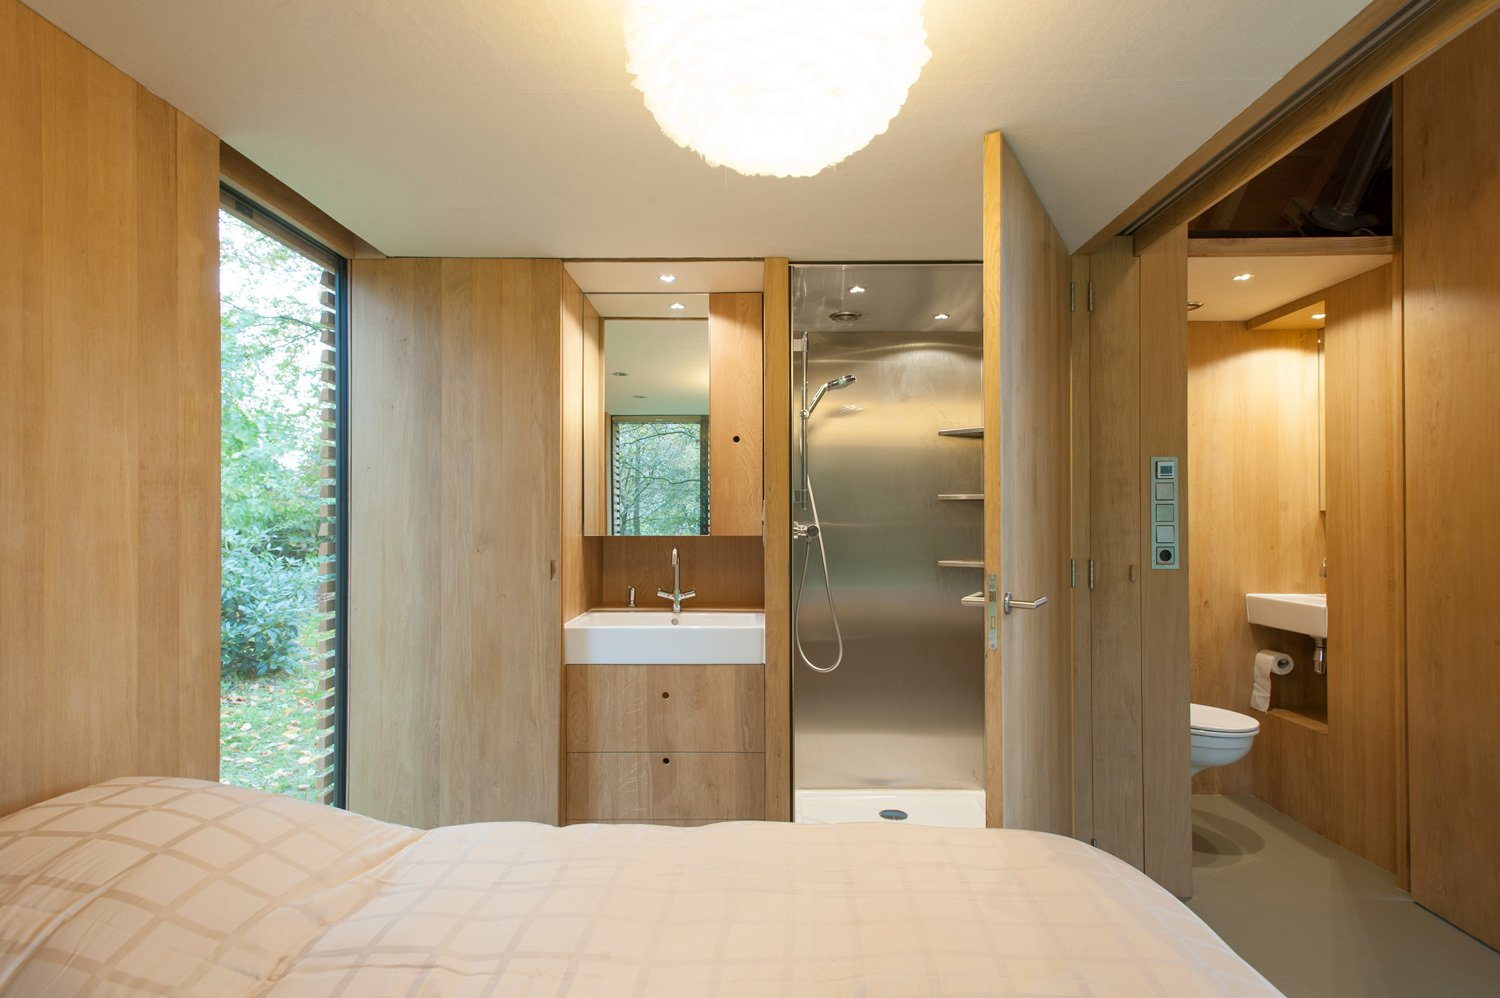 Bath Room and Enclosed Shower In the bedroom, a door opens directly to the stainless steel shower. A half-bath sits just outside the bedroom, allowing guests easy access to it when the wood panel dividing the bedroom from the main area is drawn. The sinks are by Duravit and faucets by Grohe.  Photo 6 of 9 in This Light-Filled Cabin in the Netherlands Is Completely Made by Hand from Utrecht Cabin